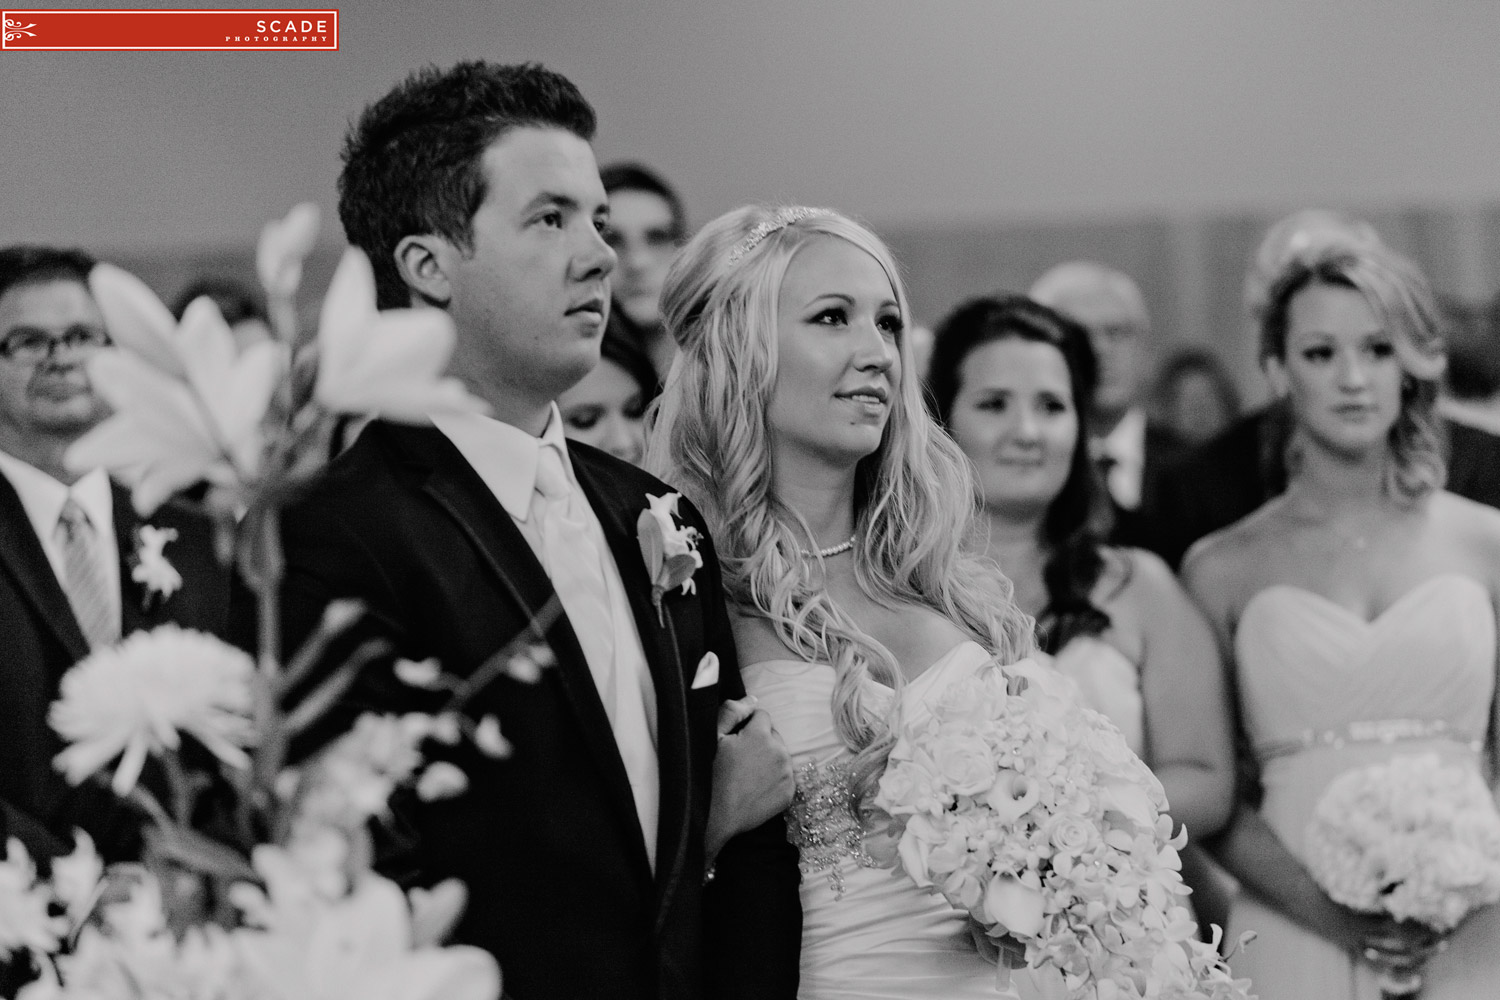 Lamont Wedding Photography - Brittney and Michael - 0013.JPG